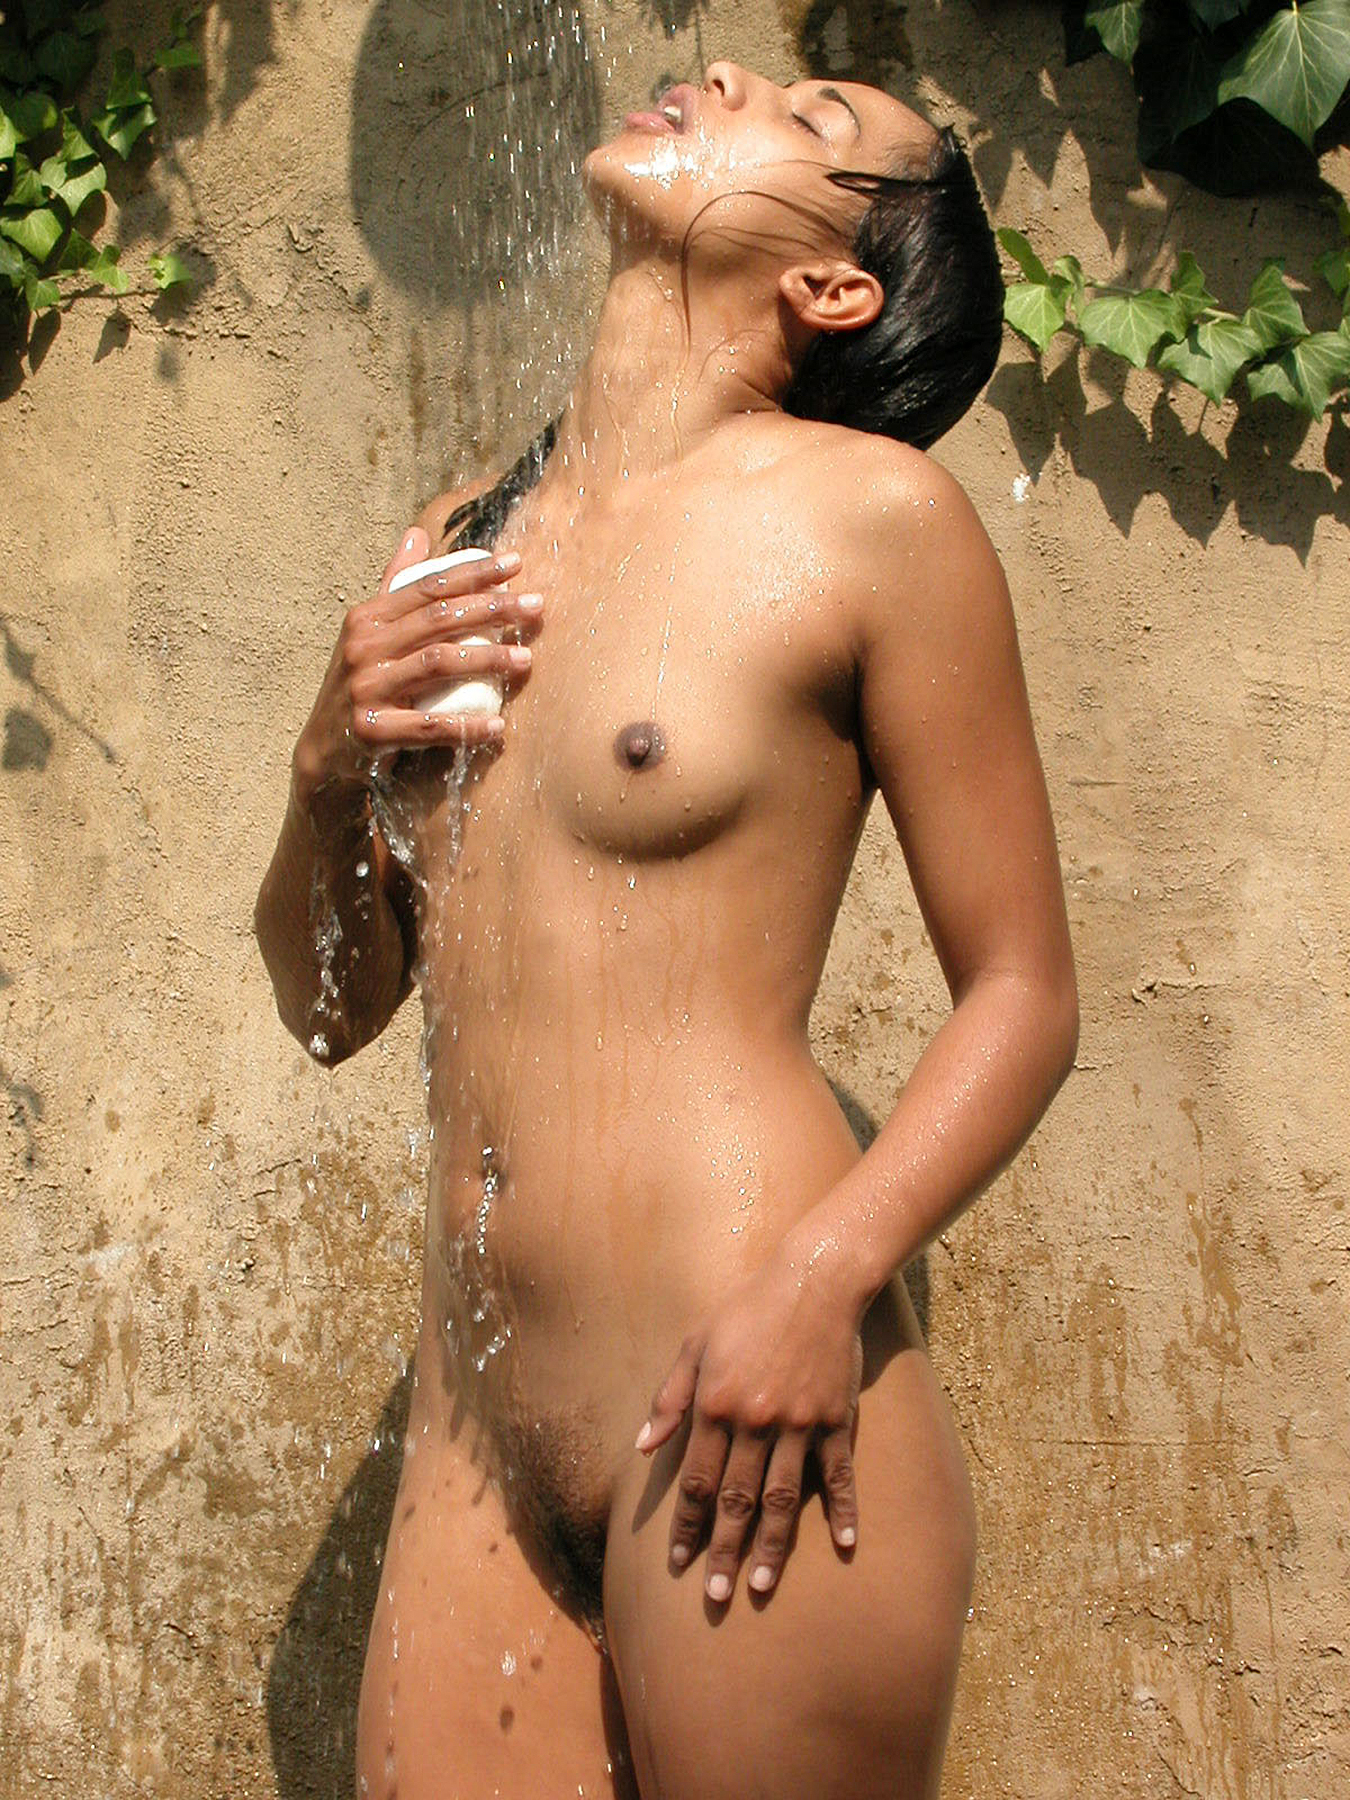 Hannah_frontal_nude_eyes_closed_dreamy_August_2003_bathing_outdoors_love